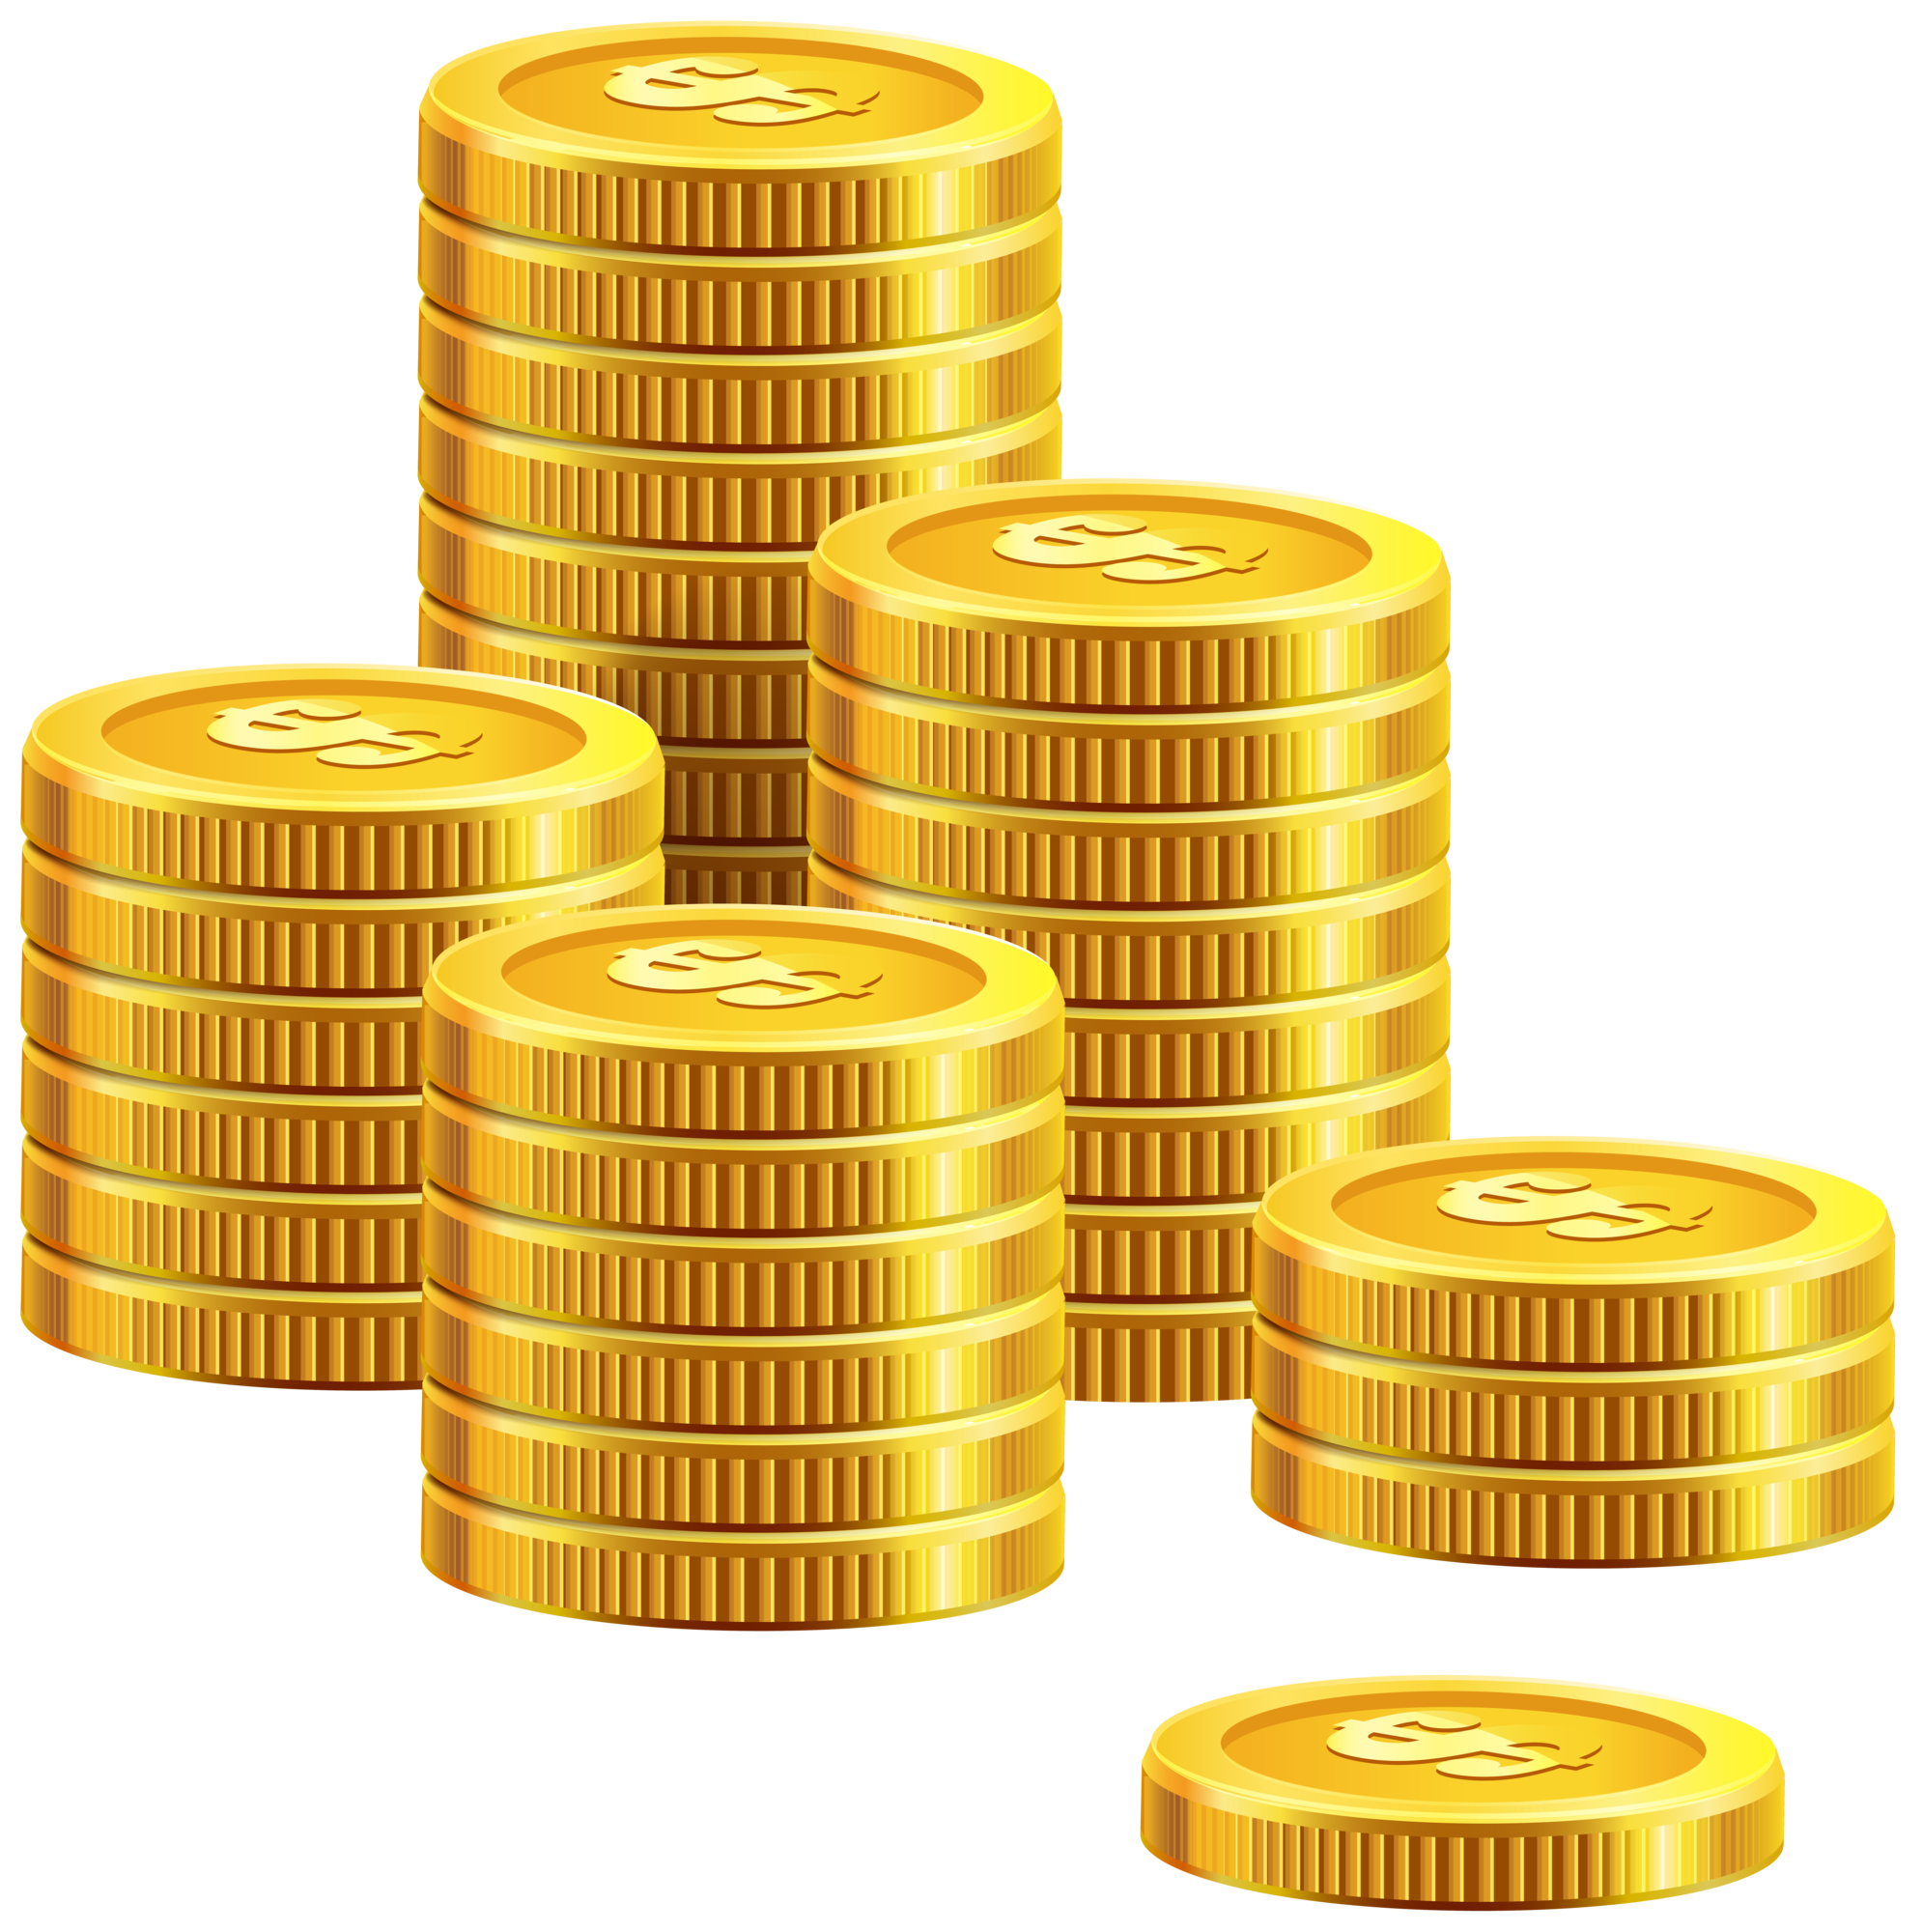 Coin clipart png. Pile of coins clip